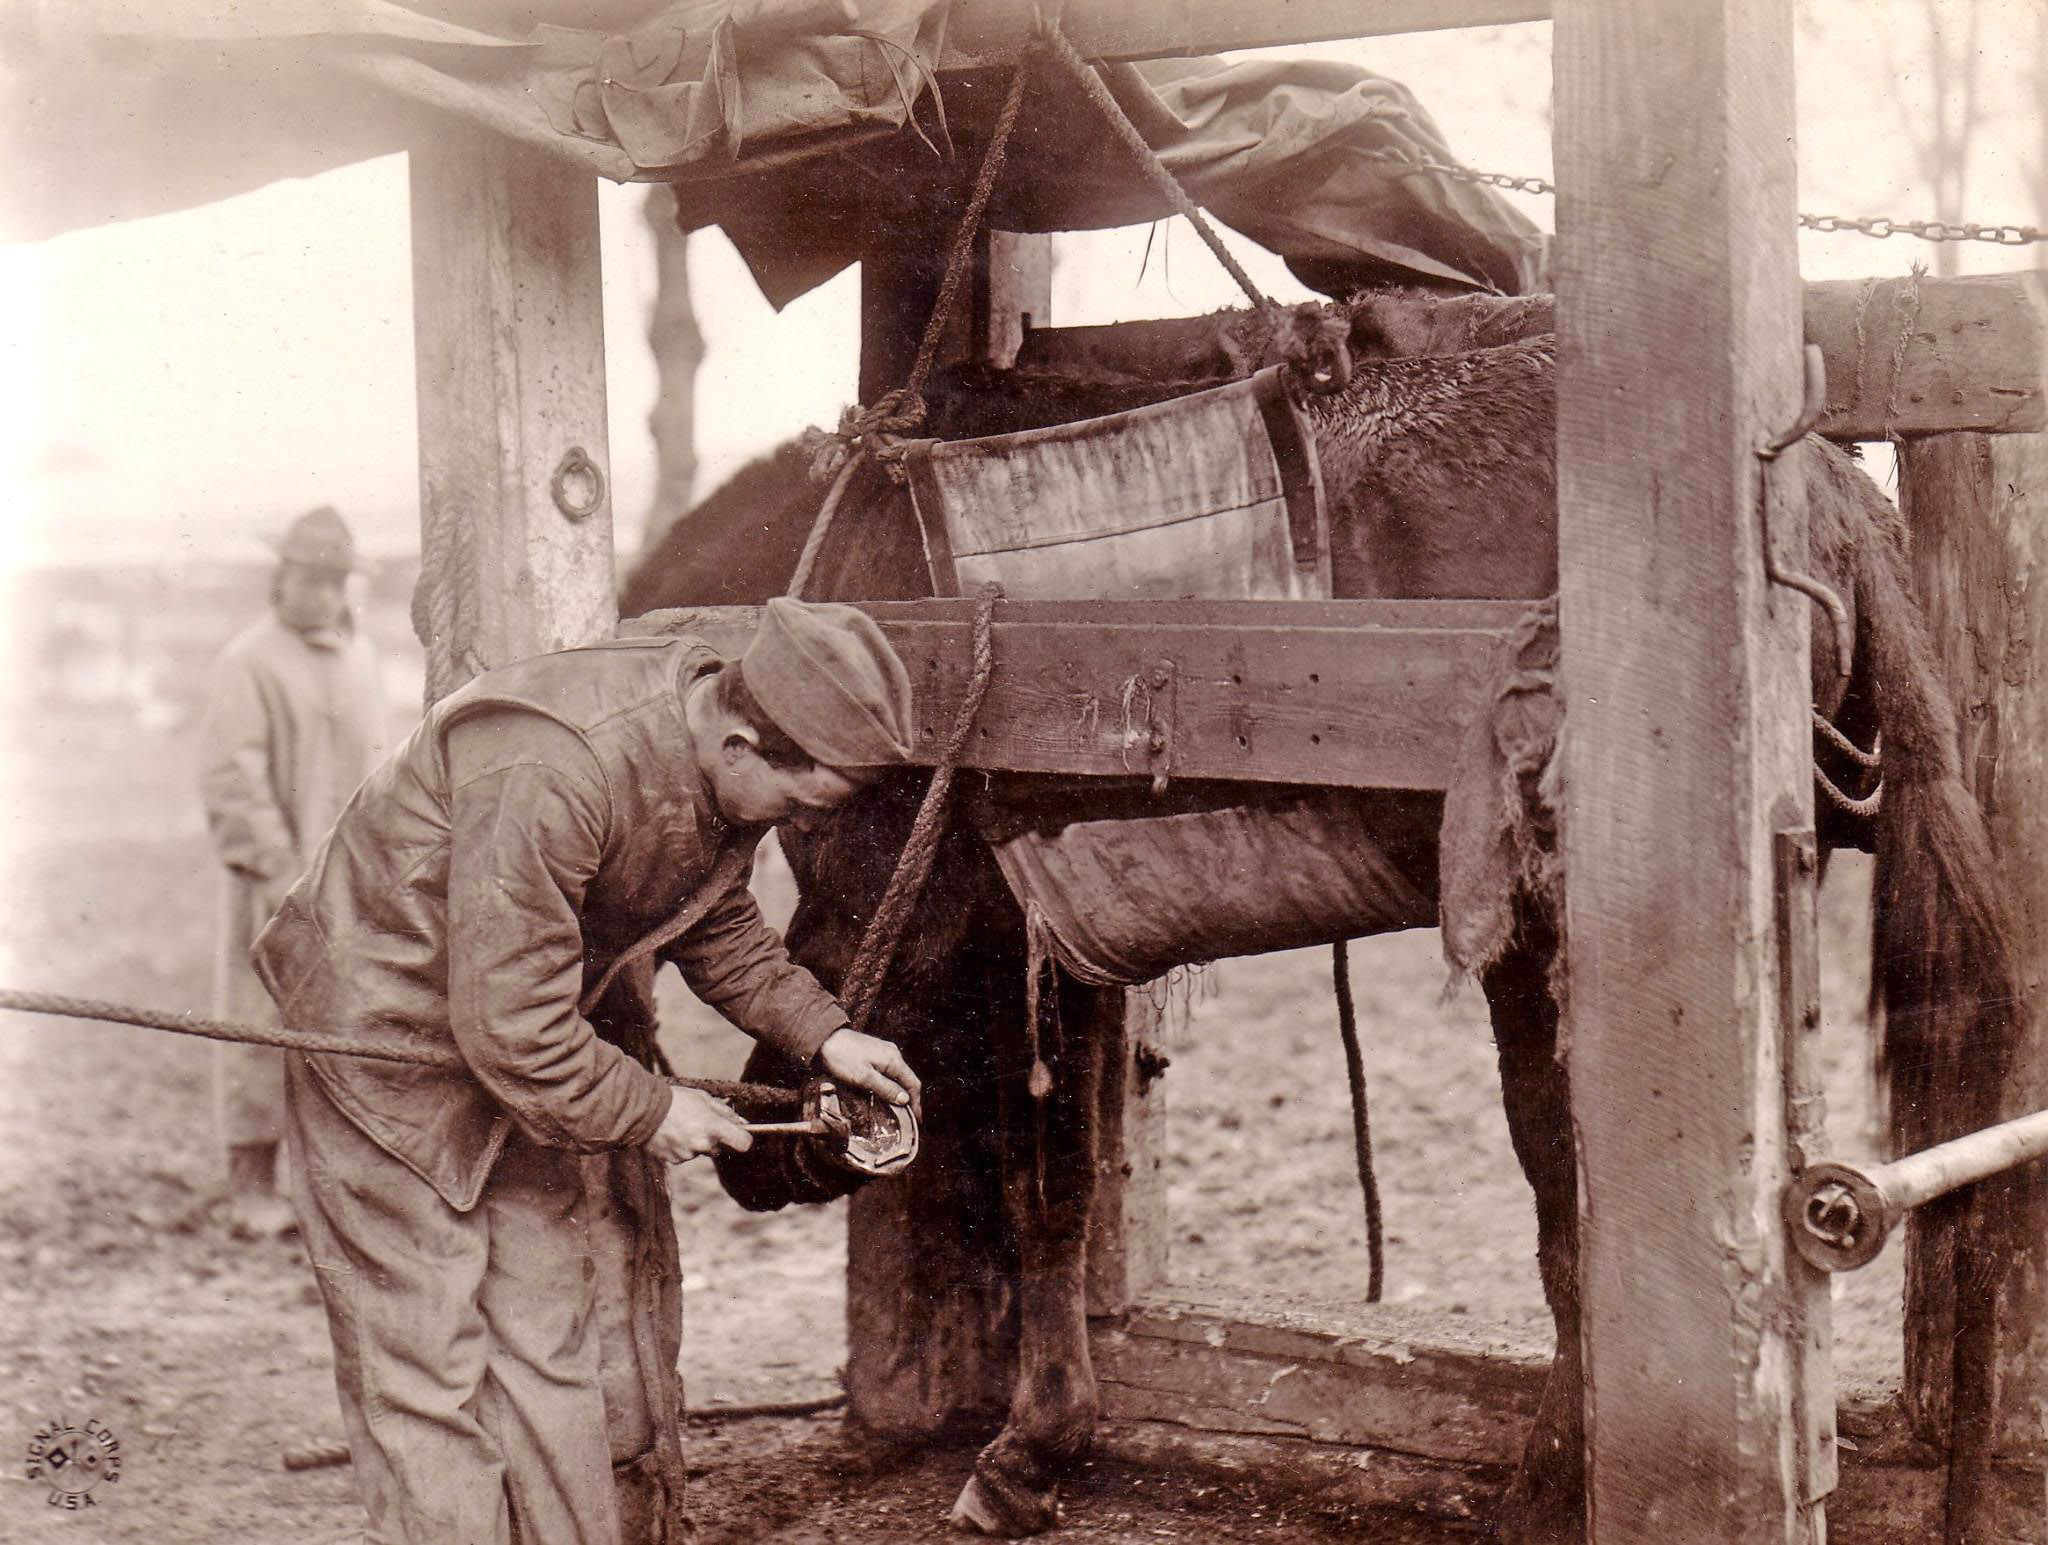 preparing to shoe a reluctant mule before discharge